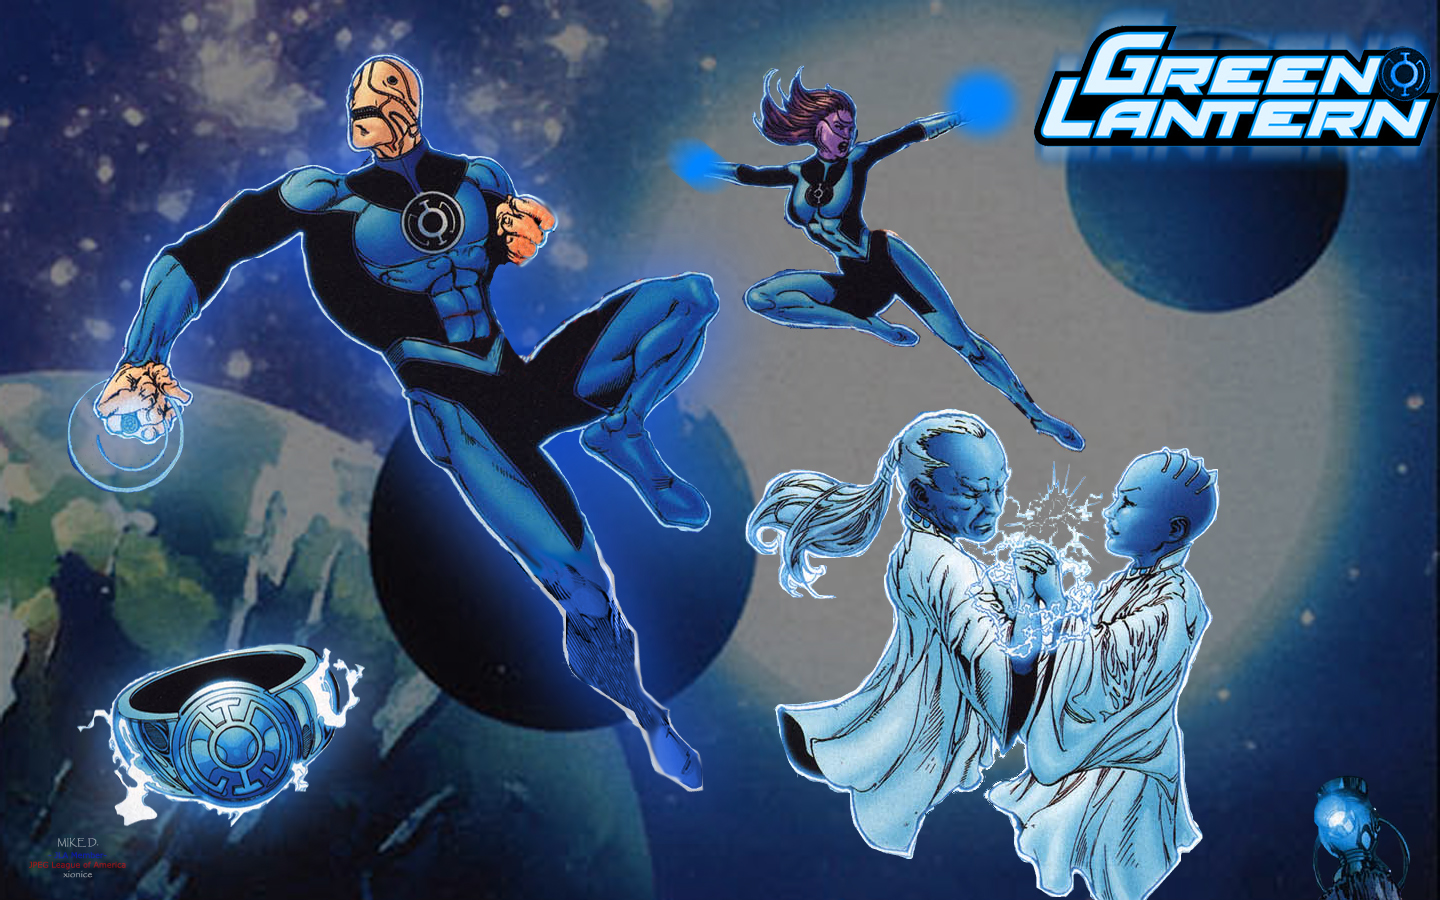 Blue Lantern Corps by Xionice 1440x900